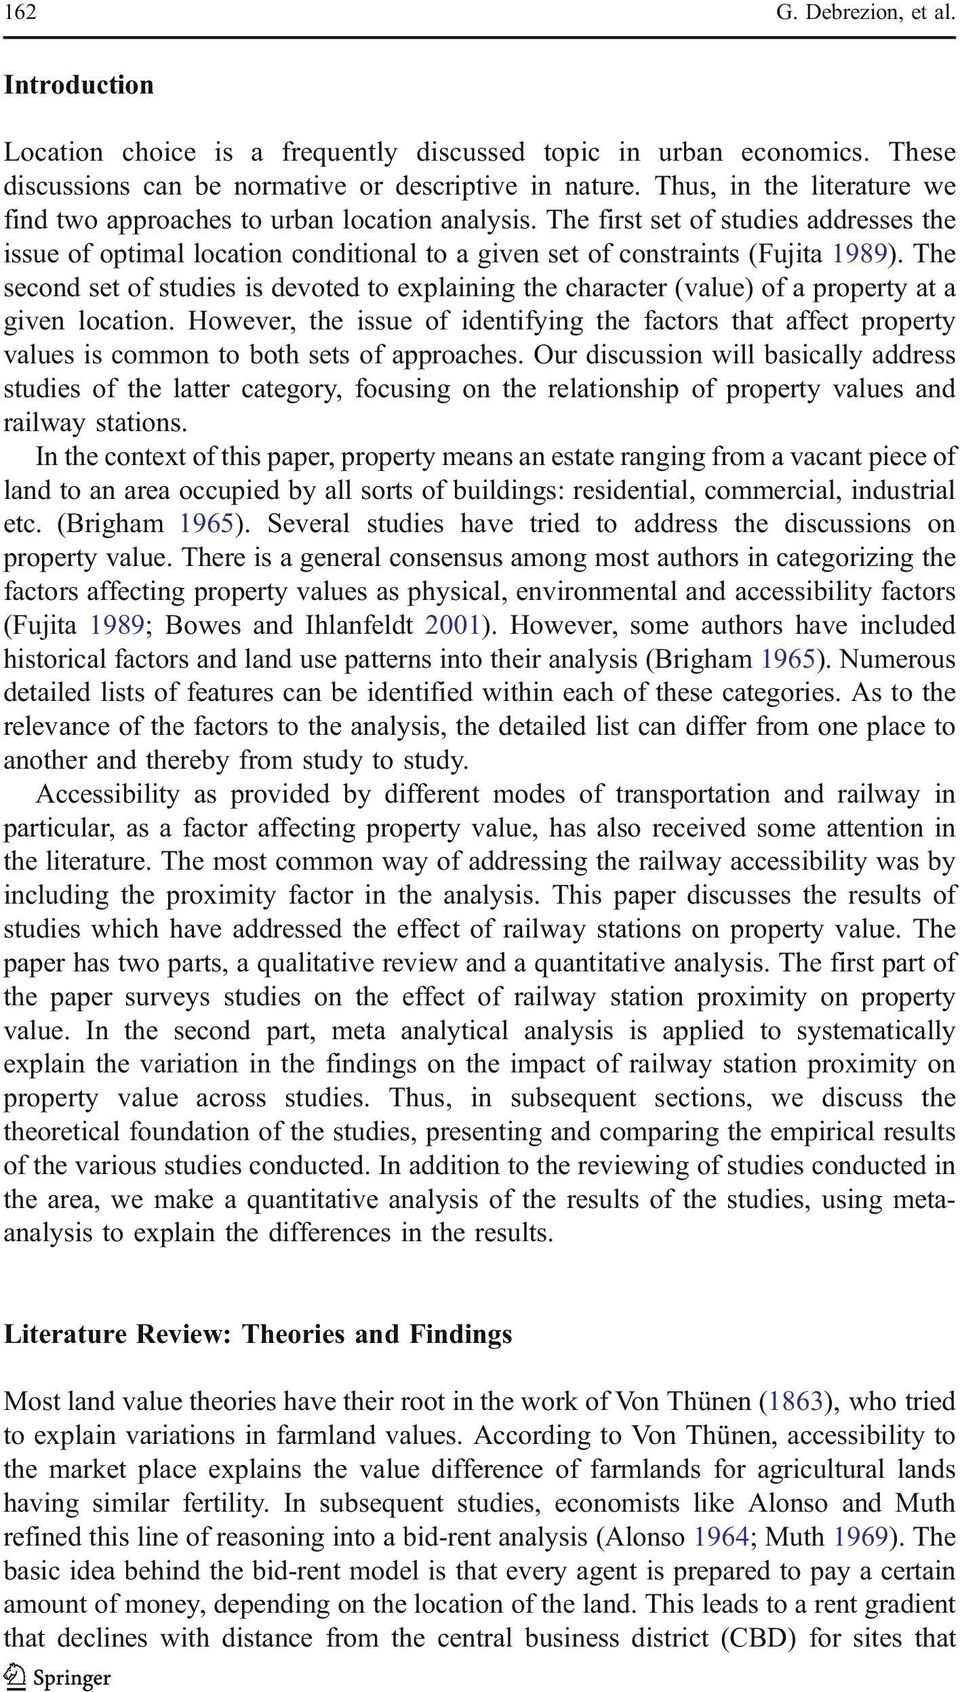 The second set of studies is devoted to explaining the character (value) of a property at a given location.